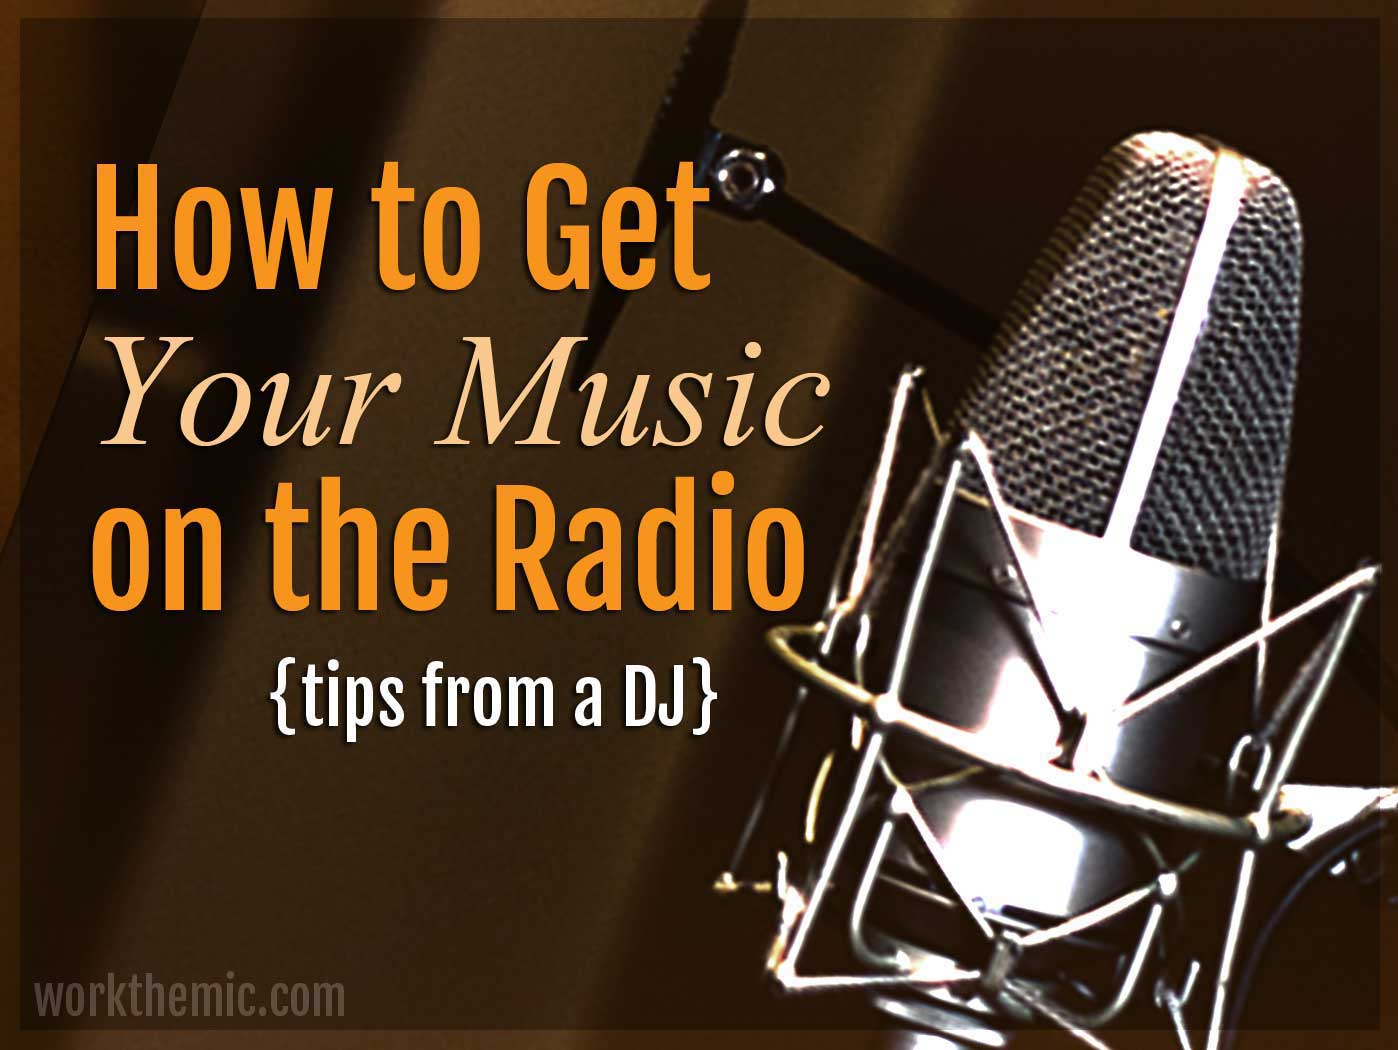 get your music on the radio: tips from a dj